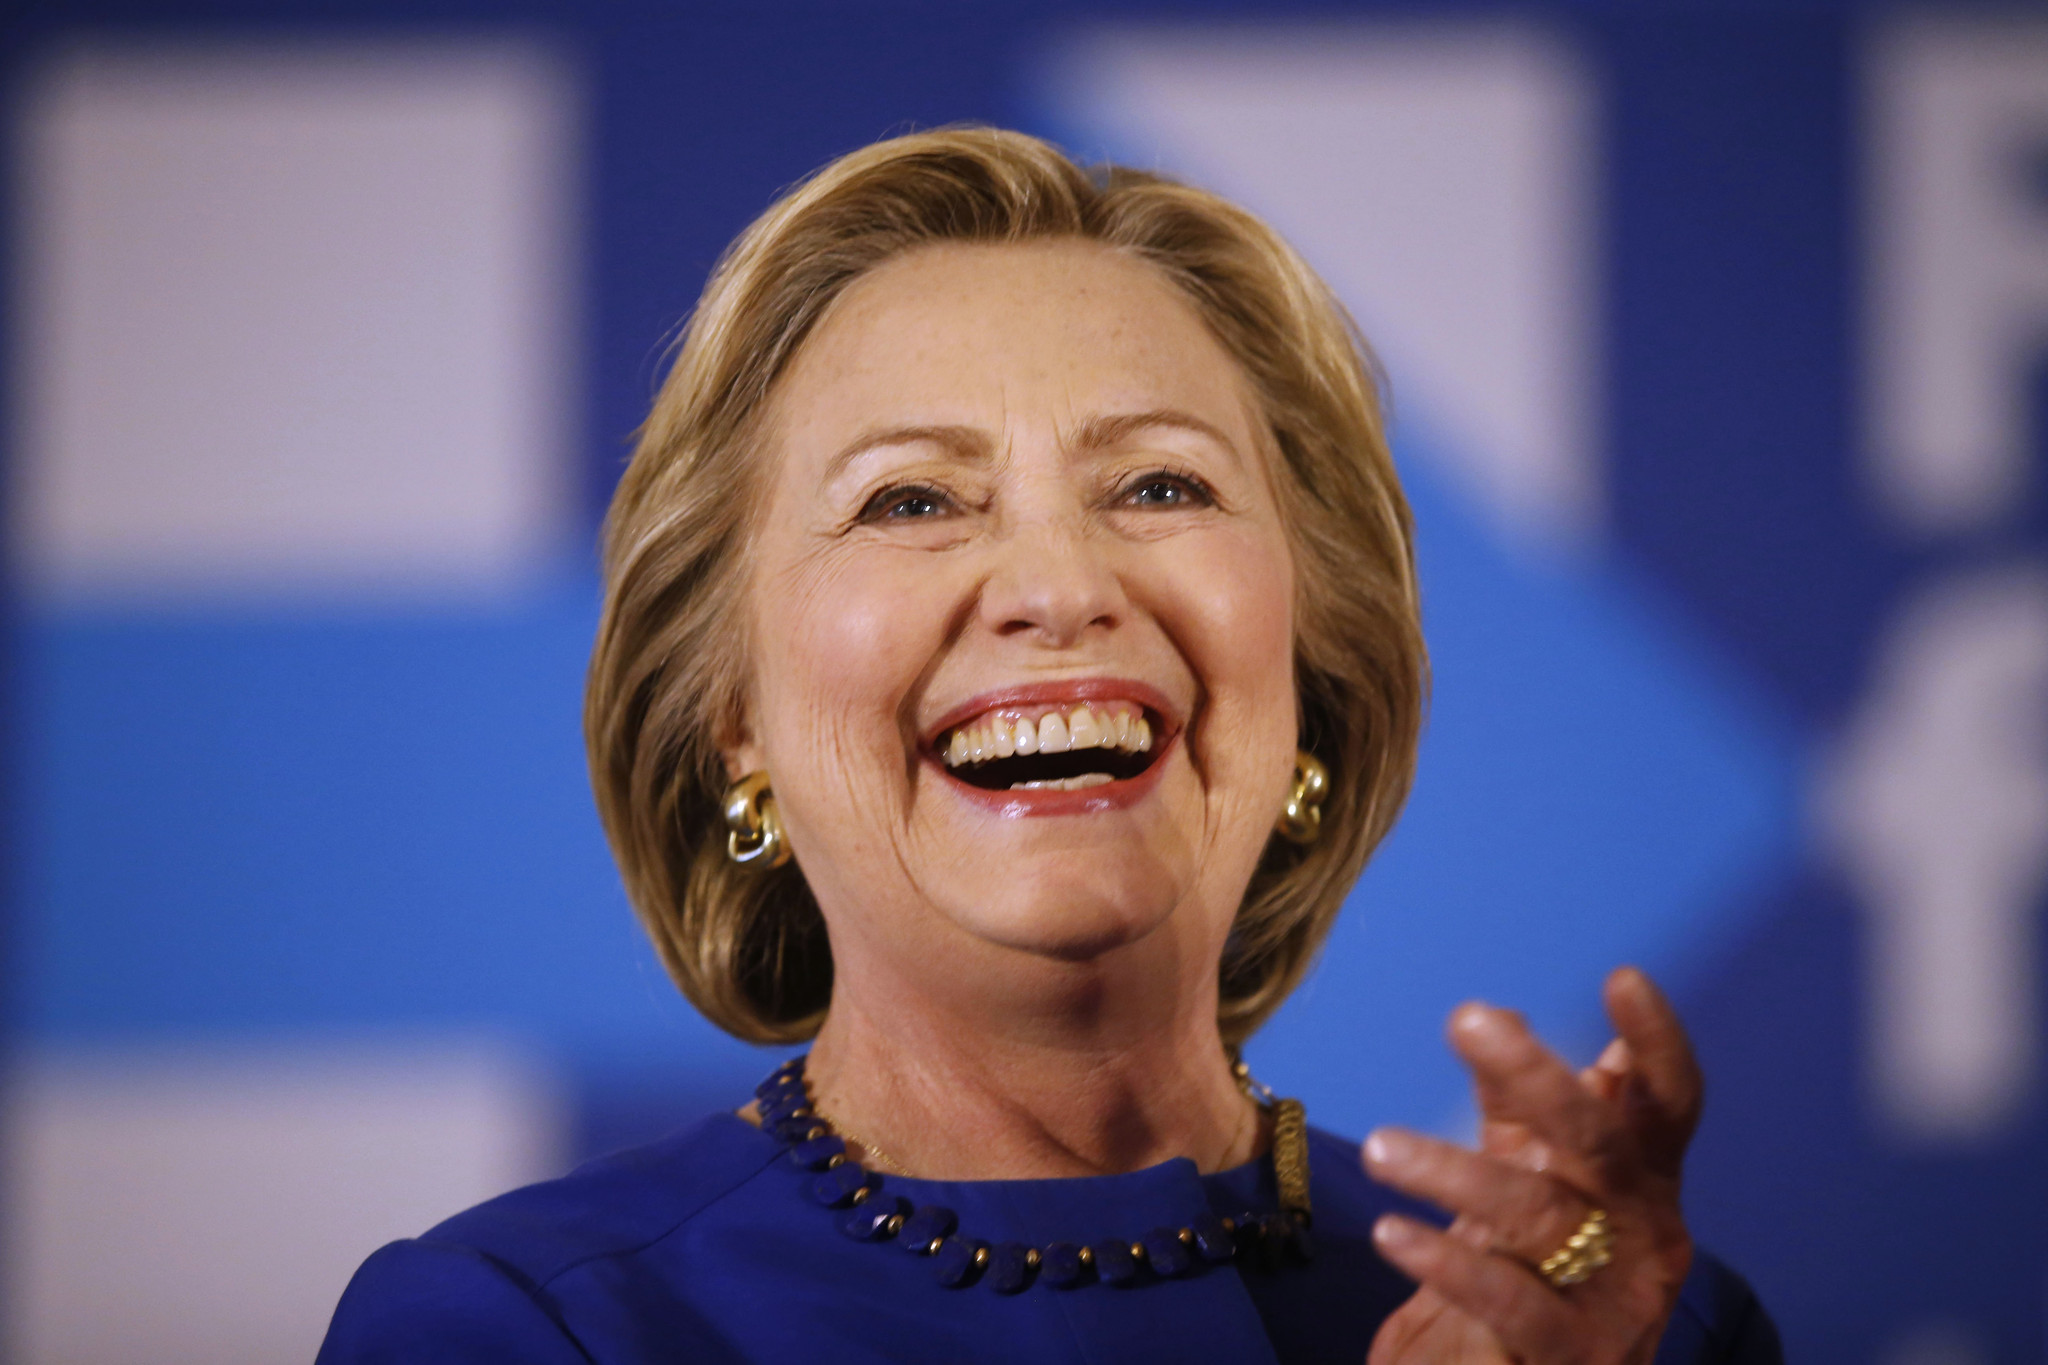 Hillary Clinton Weighs In On Chicago Pizza Debate On